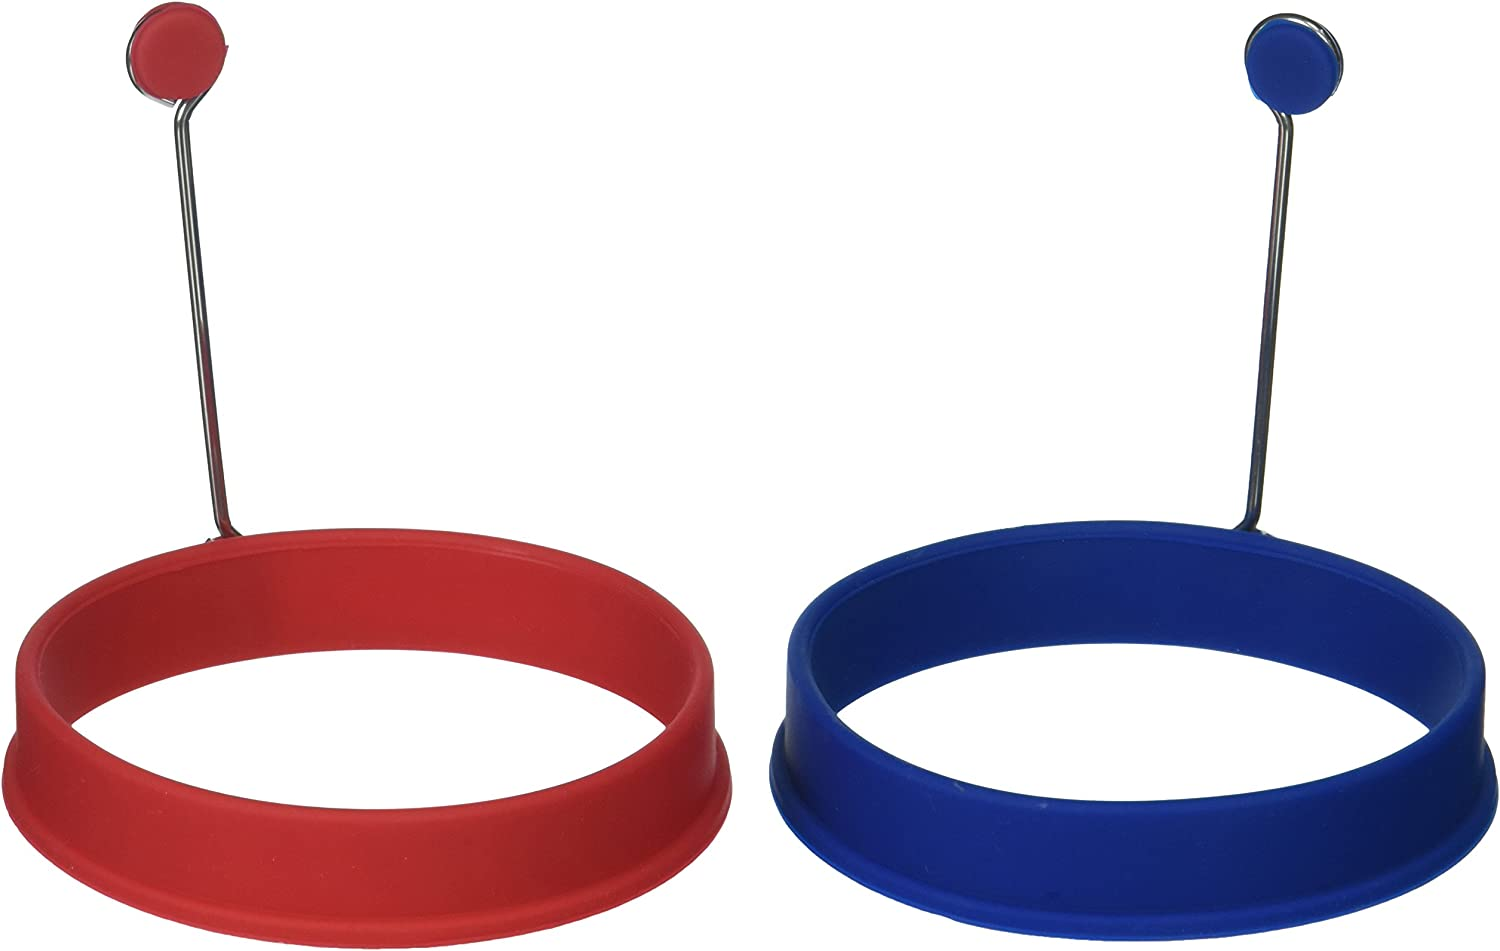 Mrs. Anderson's Baking Silicone Fried and Poached Egg and Pancake Cooking Rings, Round Shaped, Nonstick, 4-Inch x .75-Inch, Set of 2